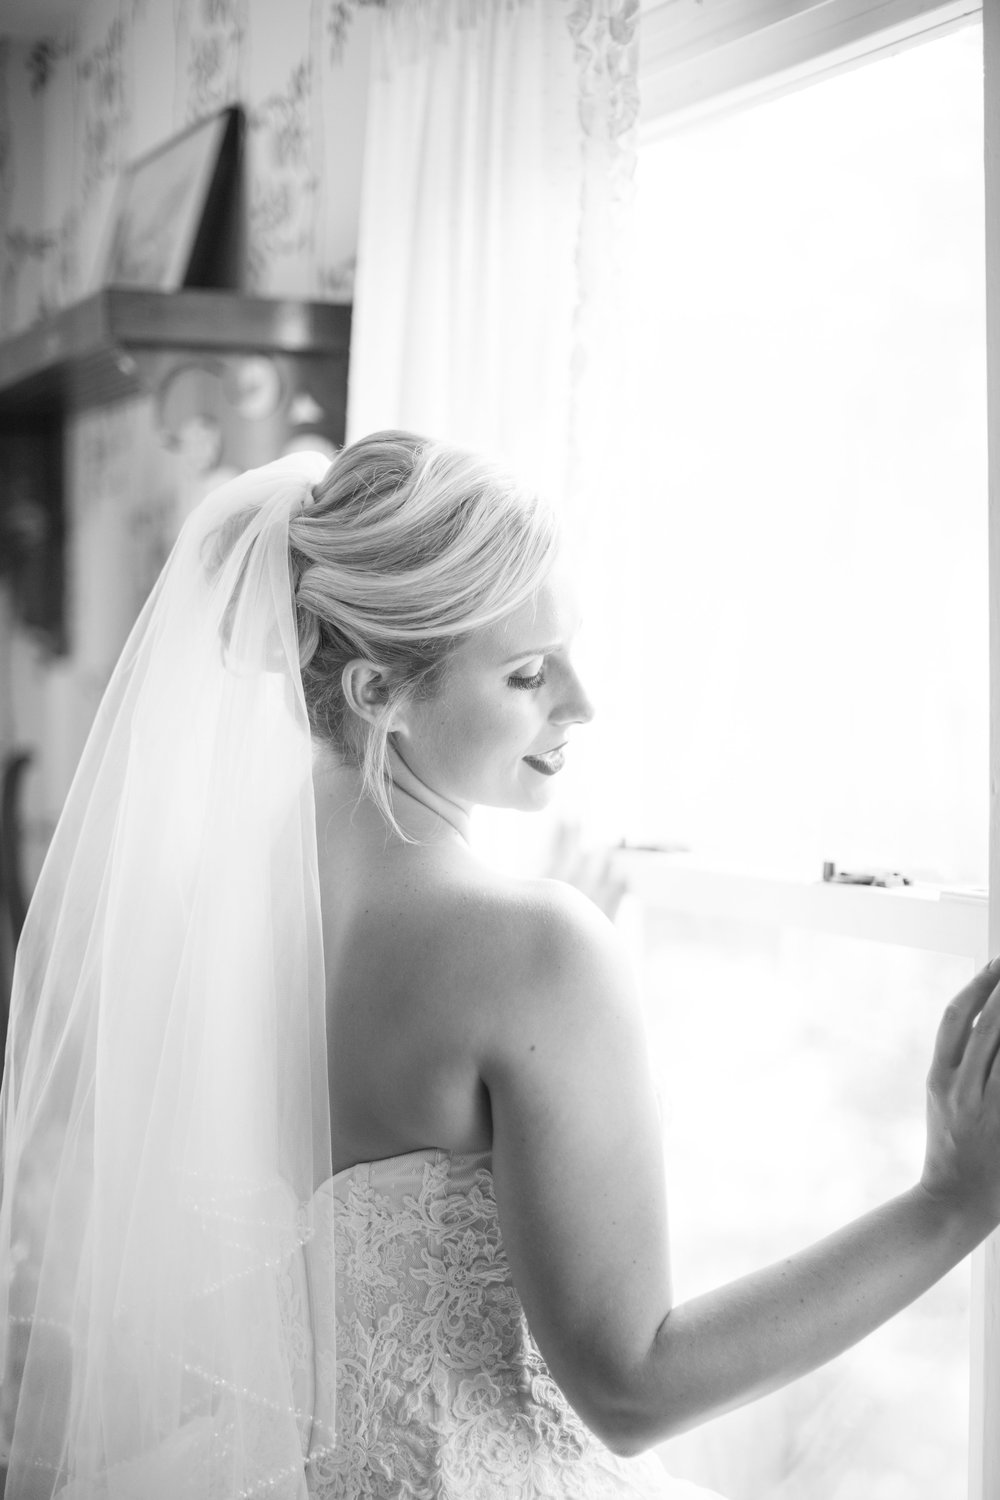 bride-wedding-dress-veil-first-look-planner-coordinator-photos.jpg